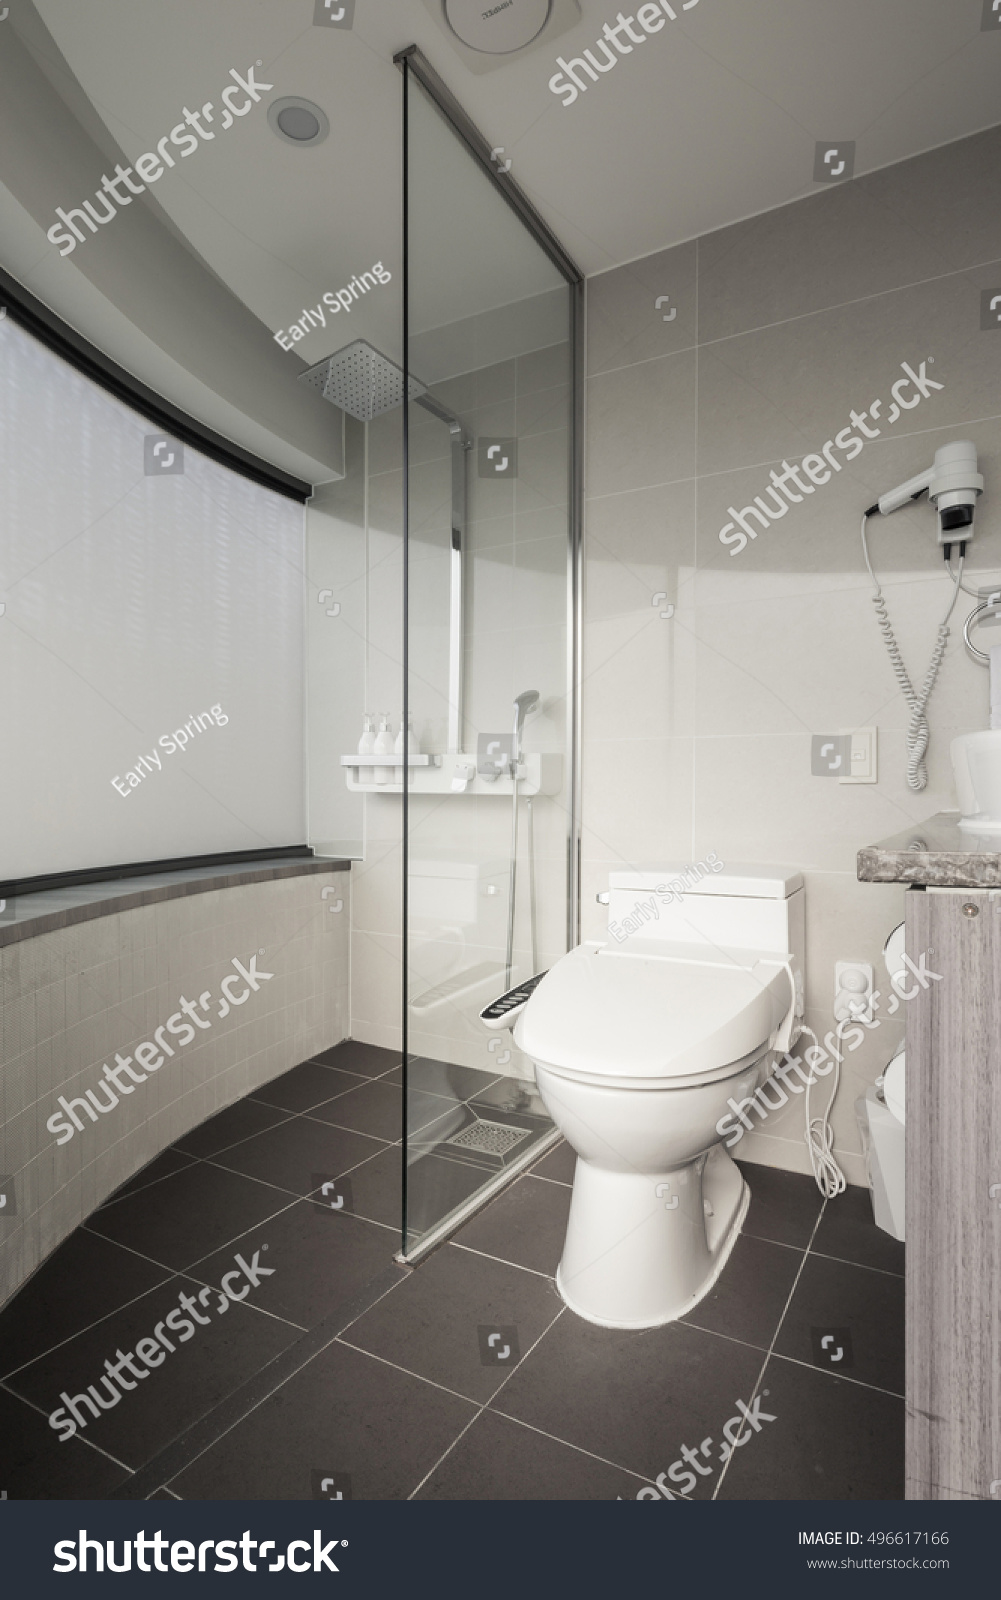 Hotel Bathroom Toileturinal Bedpan Shower Lighting Stock Photo ...